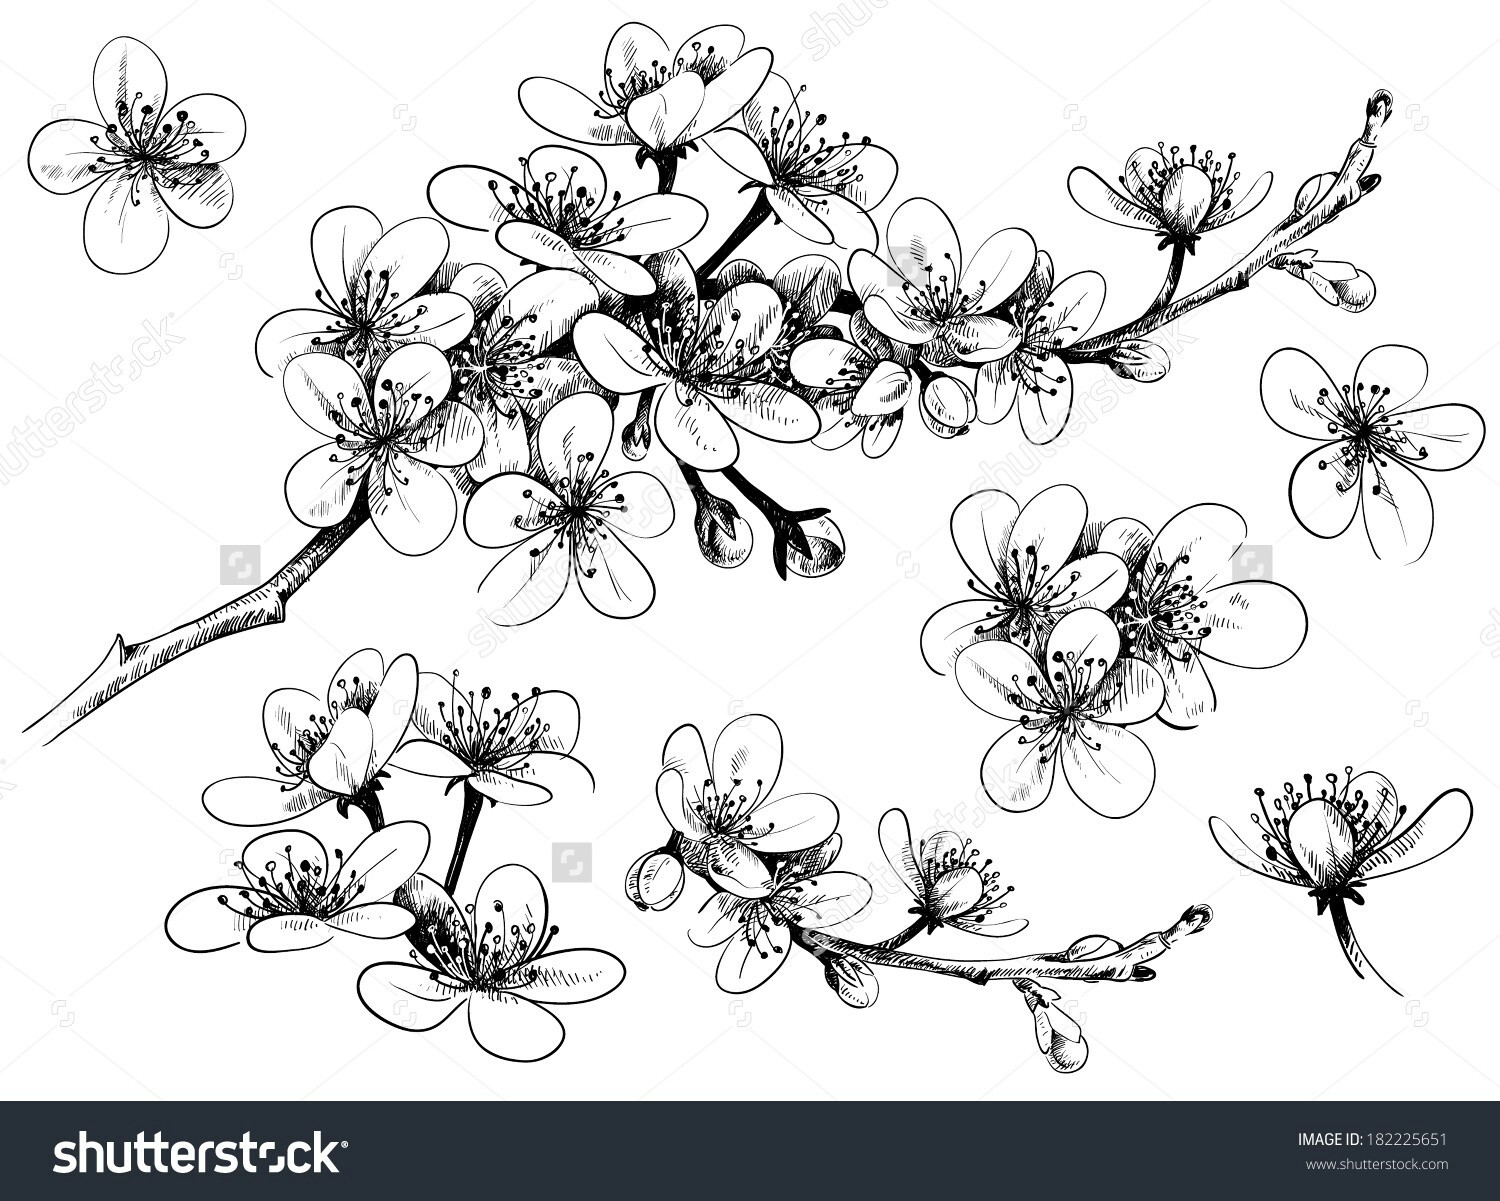 Drawn sakura blossom sketch On buy learn Blossoms &